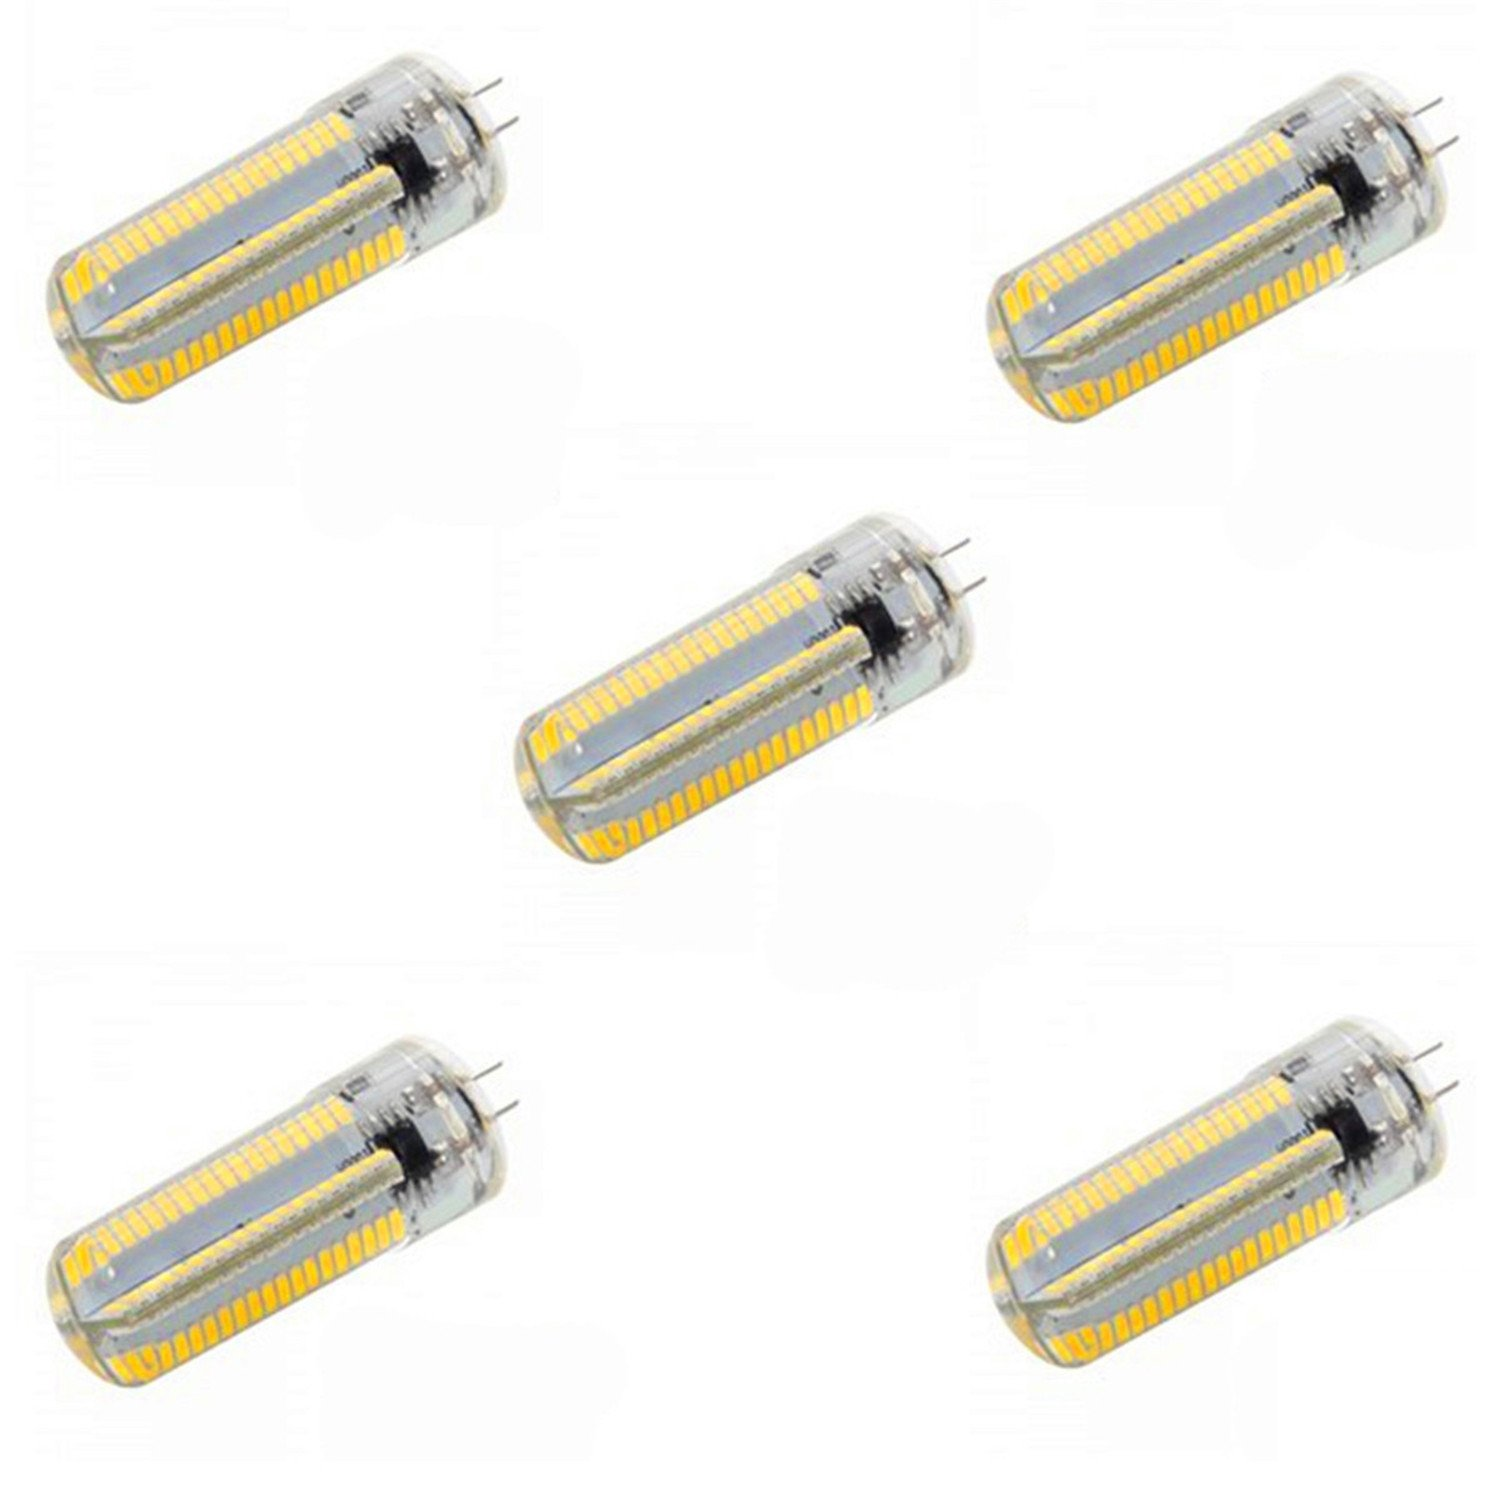 Warm White LL 220V 5 Watts G4 Dimmable 3014 SMD LED Light Cool White 40W50W Halogen Replacement for Chandelier Crystal Ceiling Lamp Light in Living Room Kitchen Bath Room (Pack of 5) (Size   Warm White)